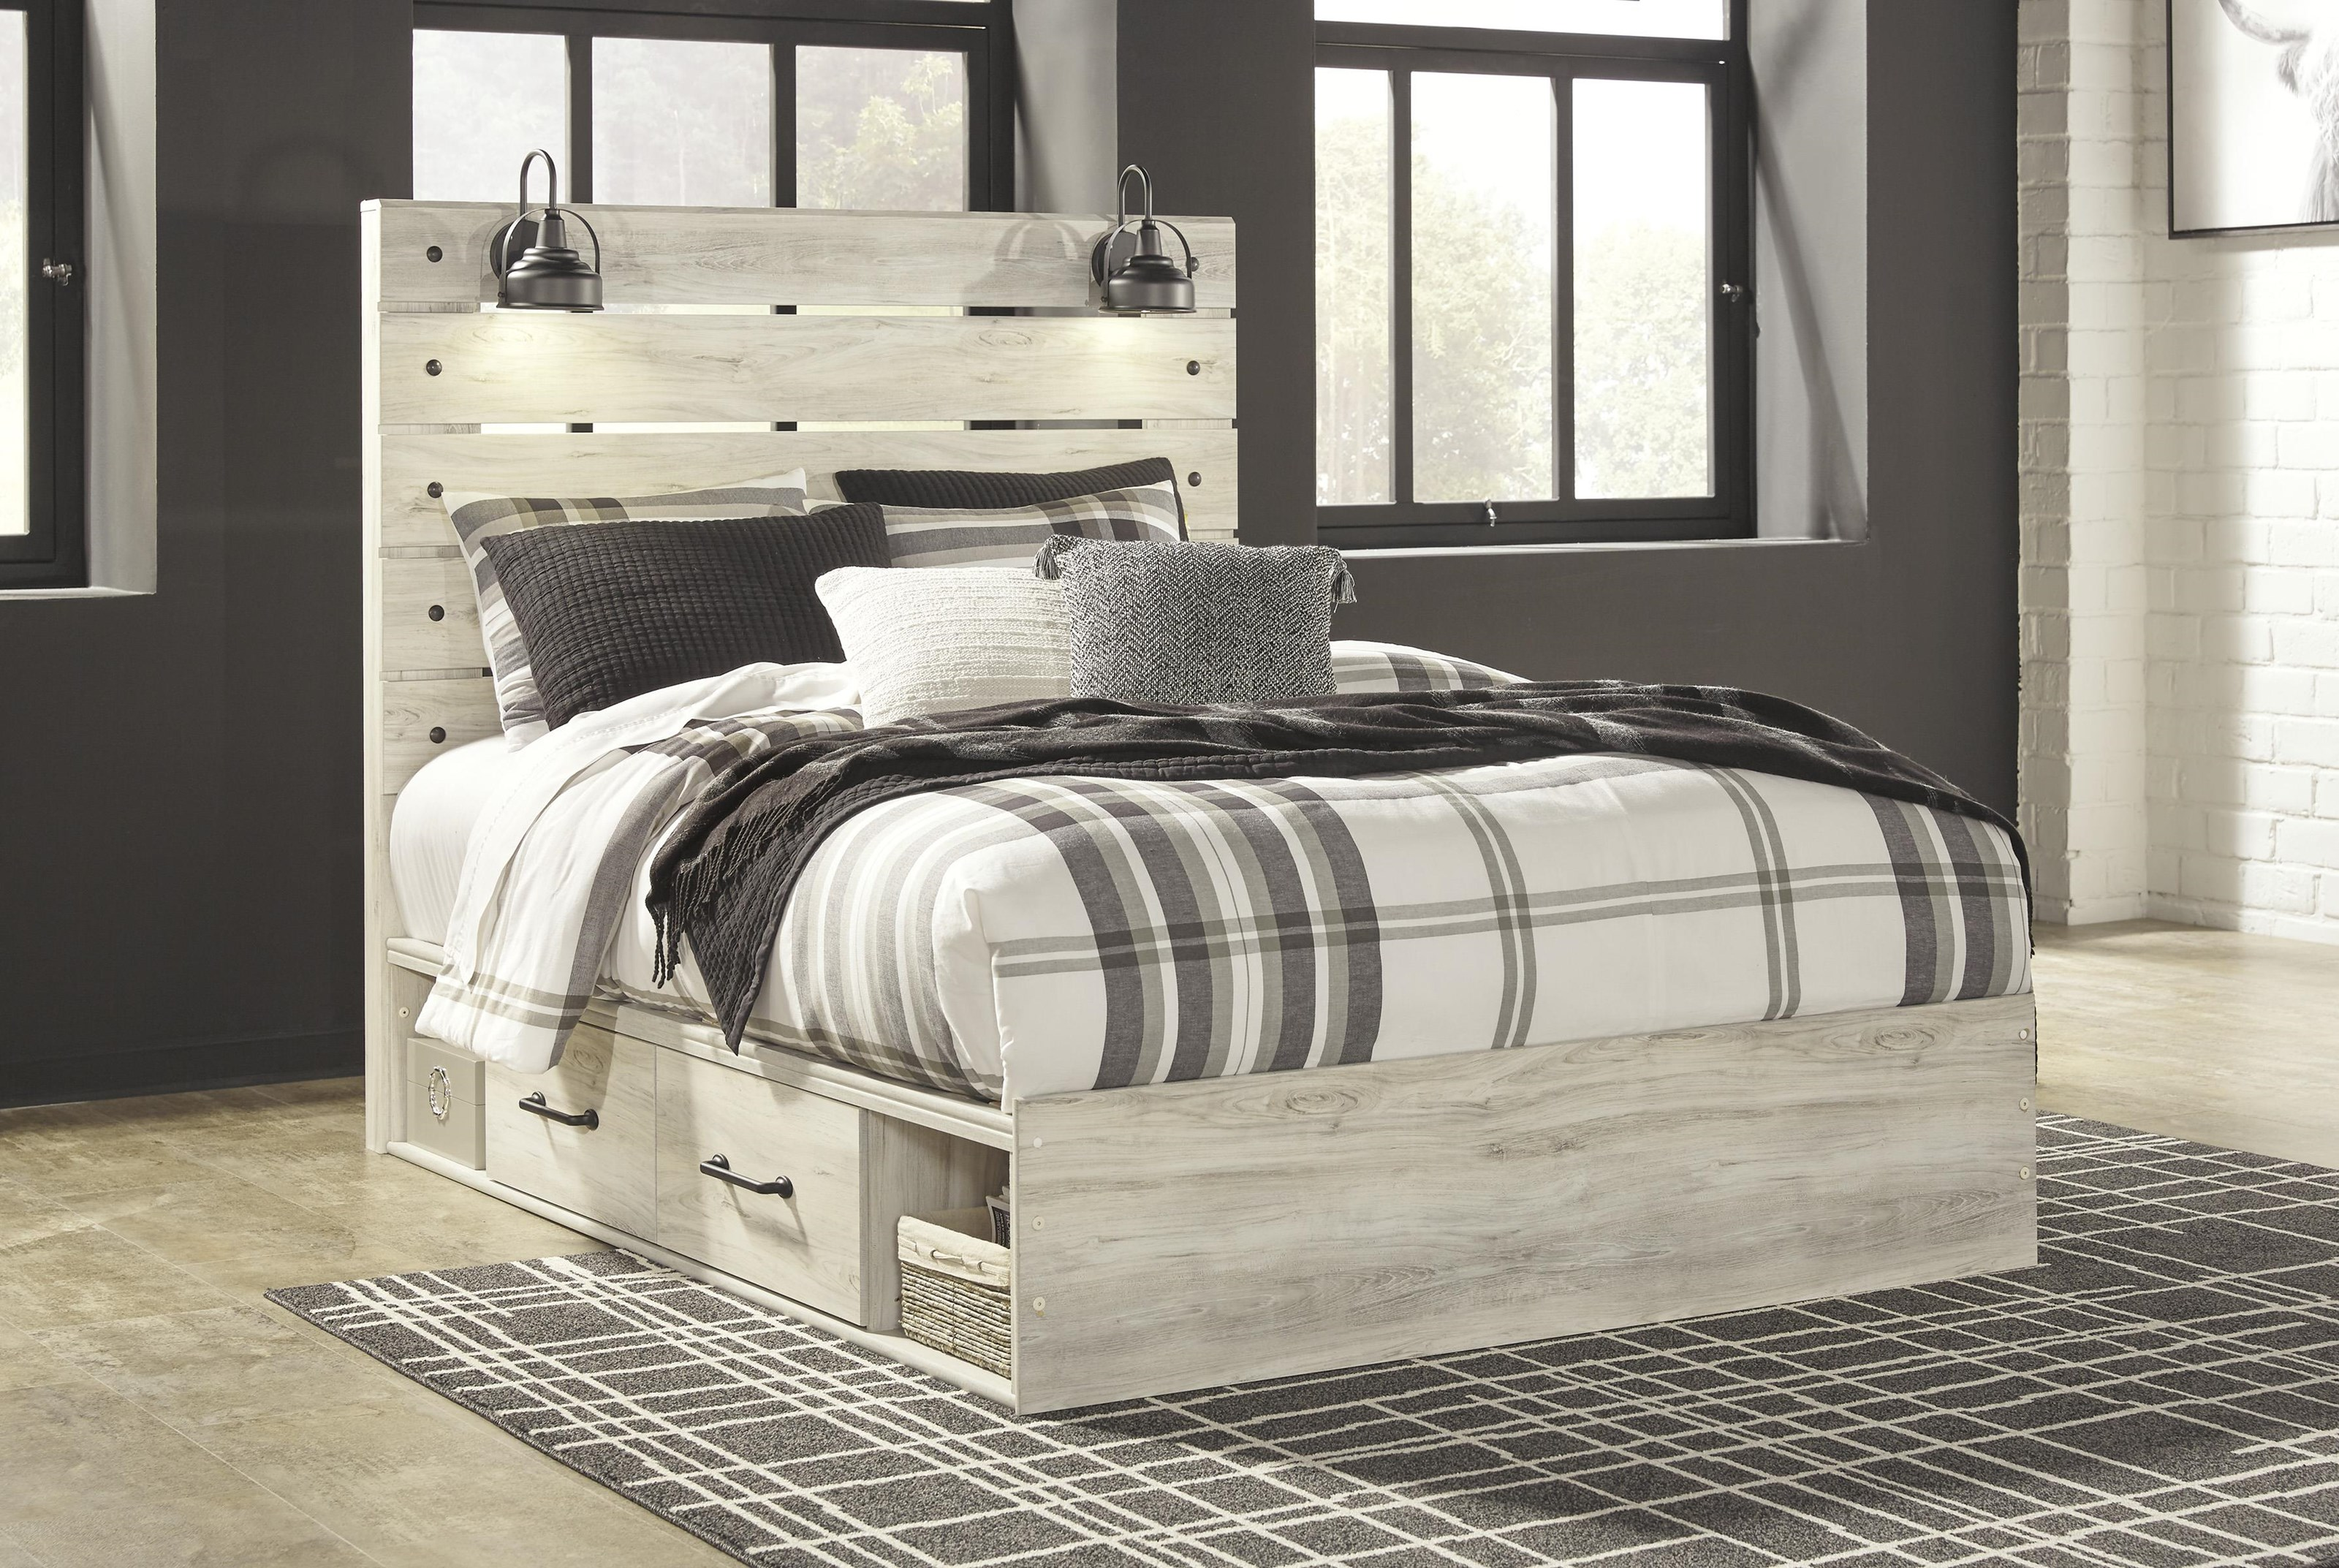 Ashley Furniture Cambeck Queen Storage Bed with Lights ...